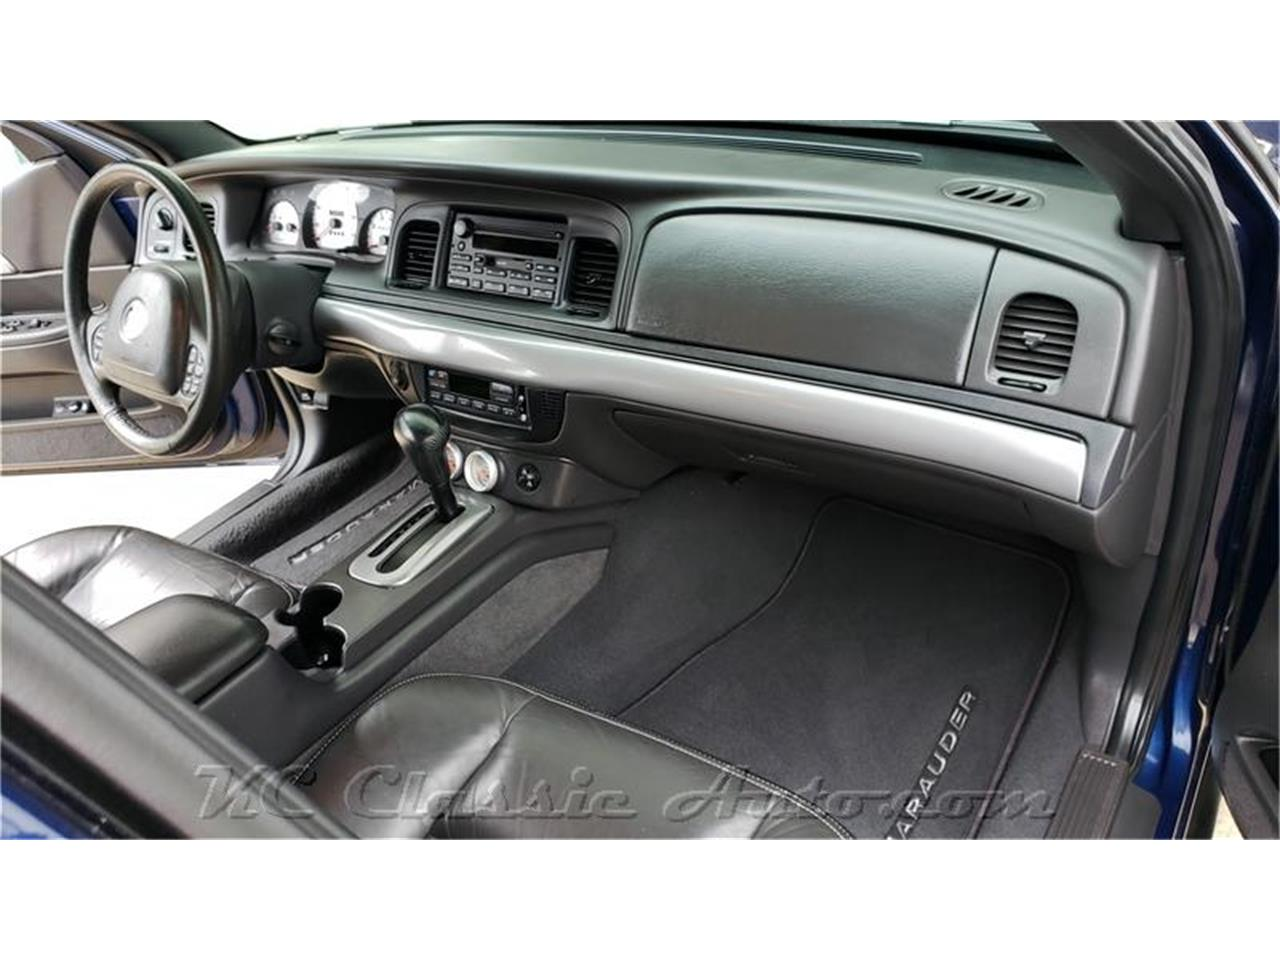 2003 Mercury Marauder for sale in Lenexa, KS – photo 19